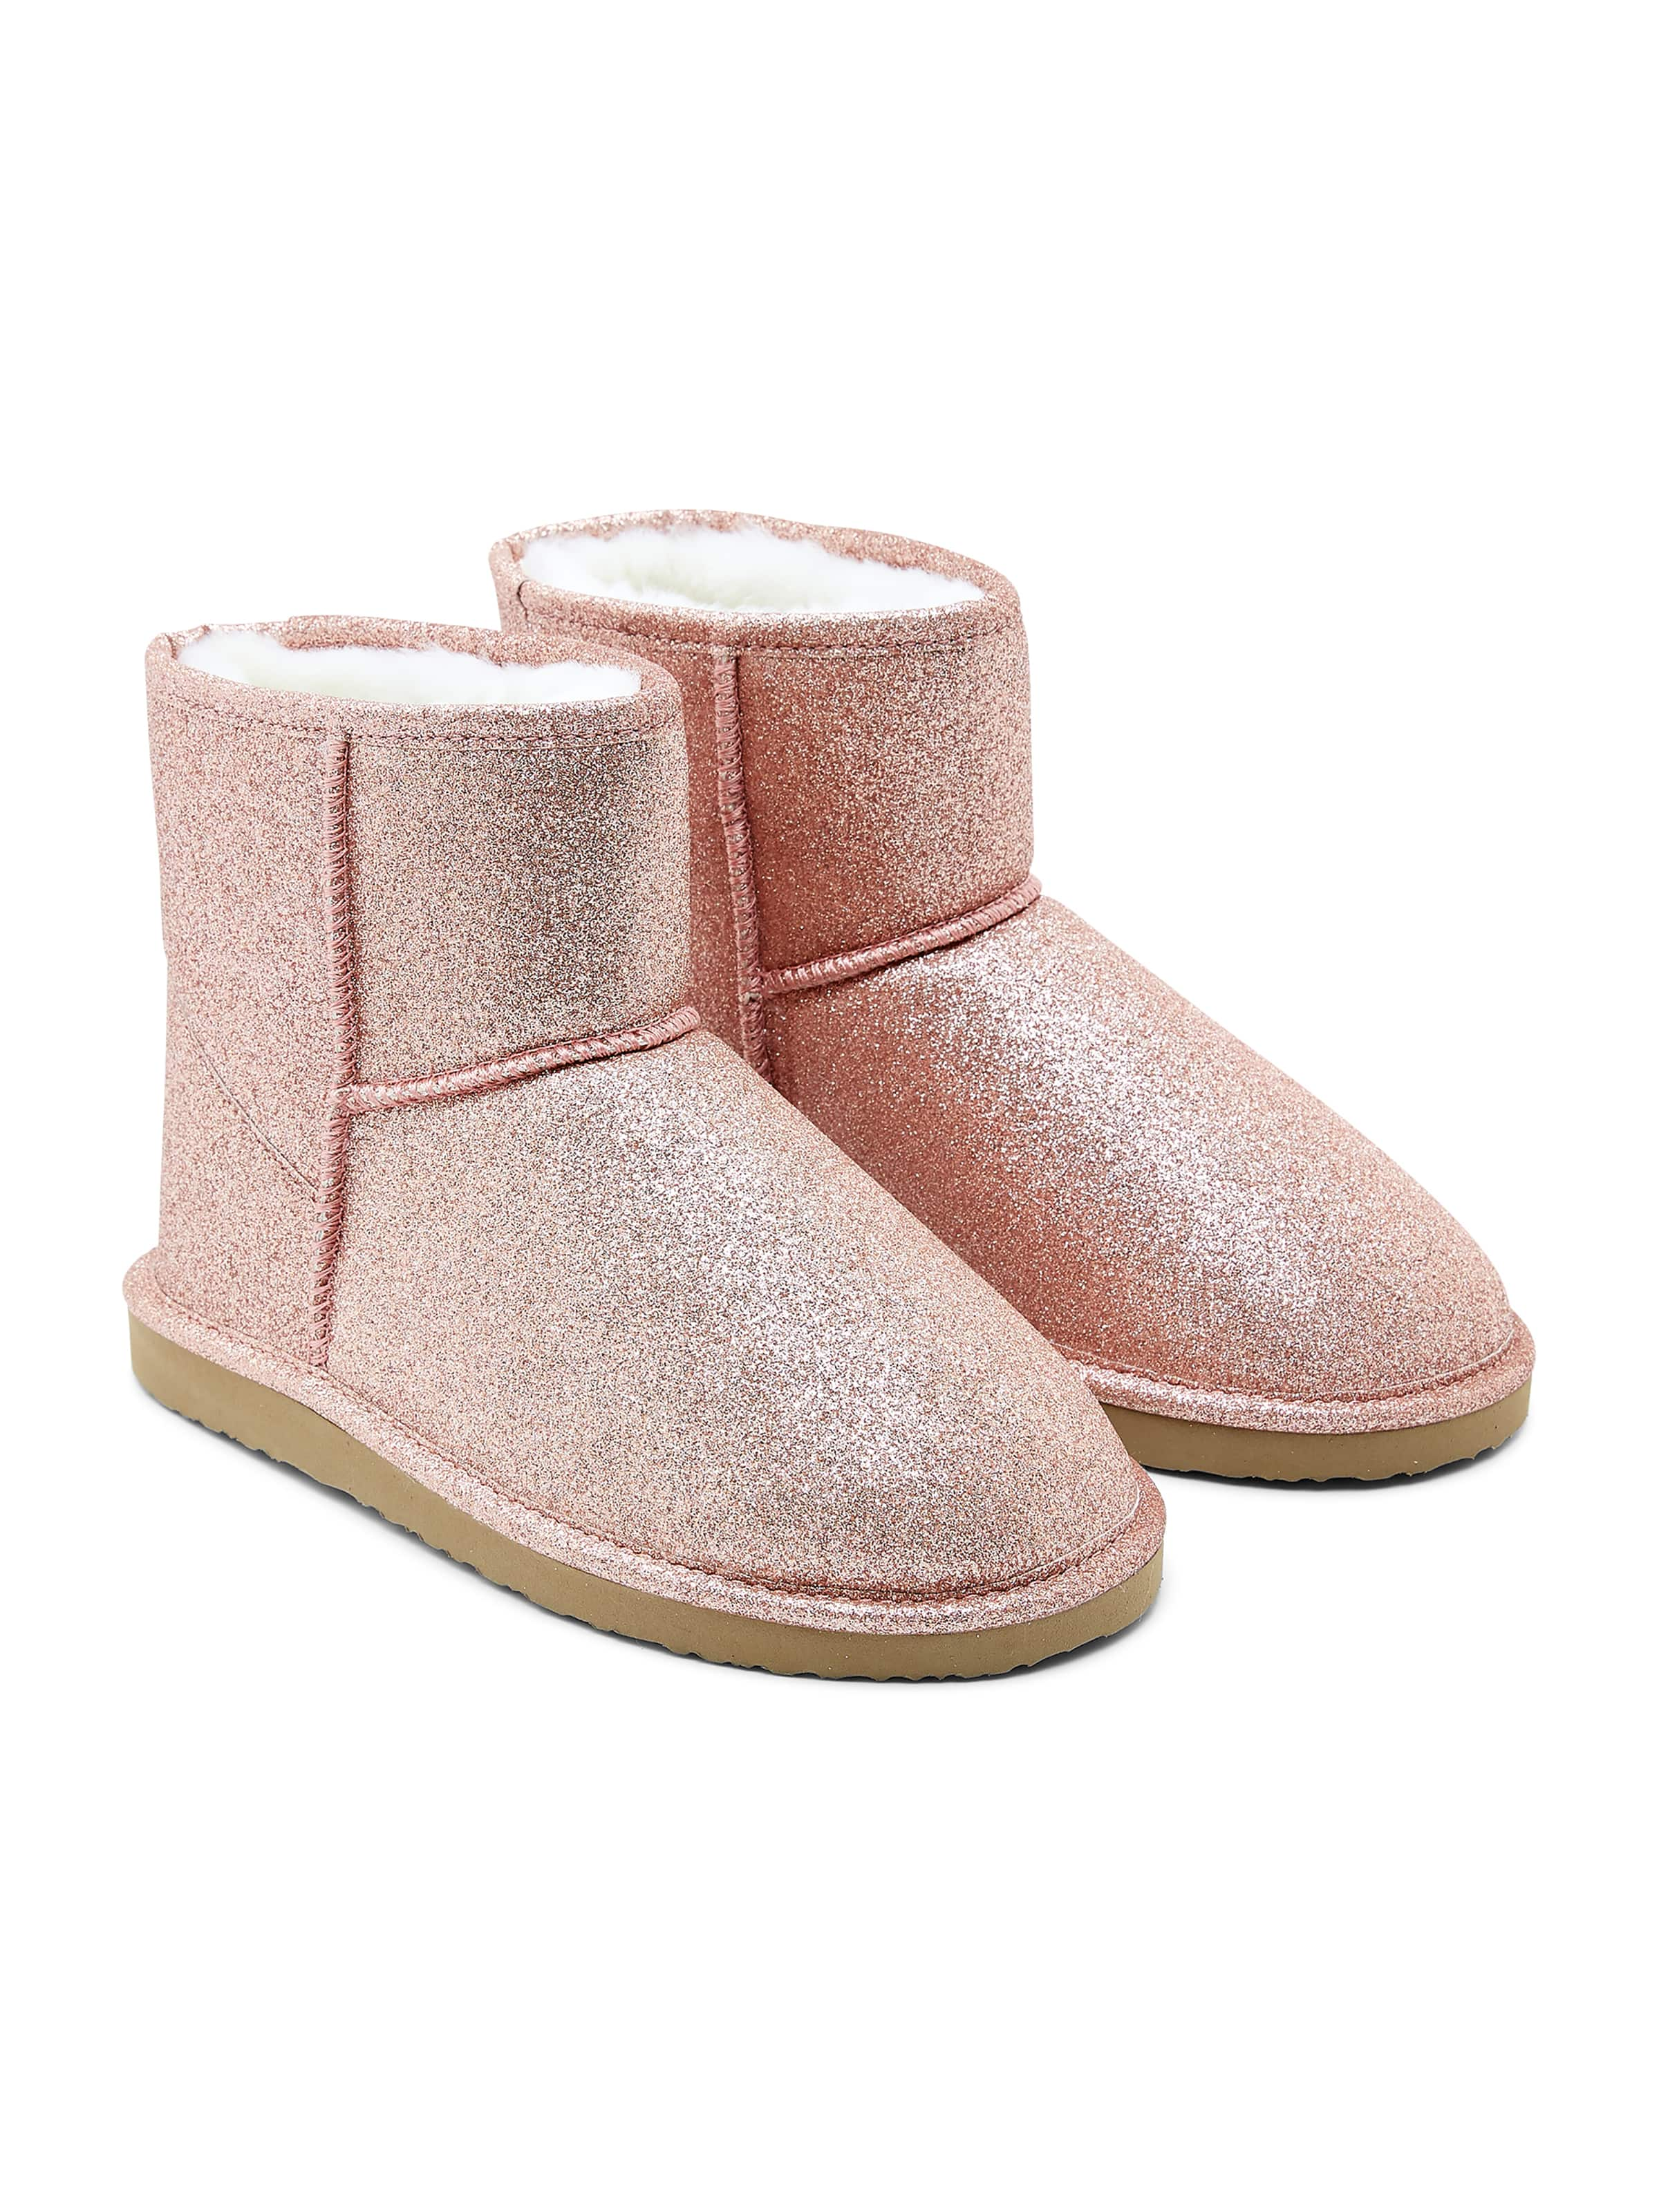 Limited Edition Rose Gold Glitter Homeboot